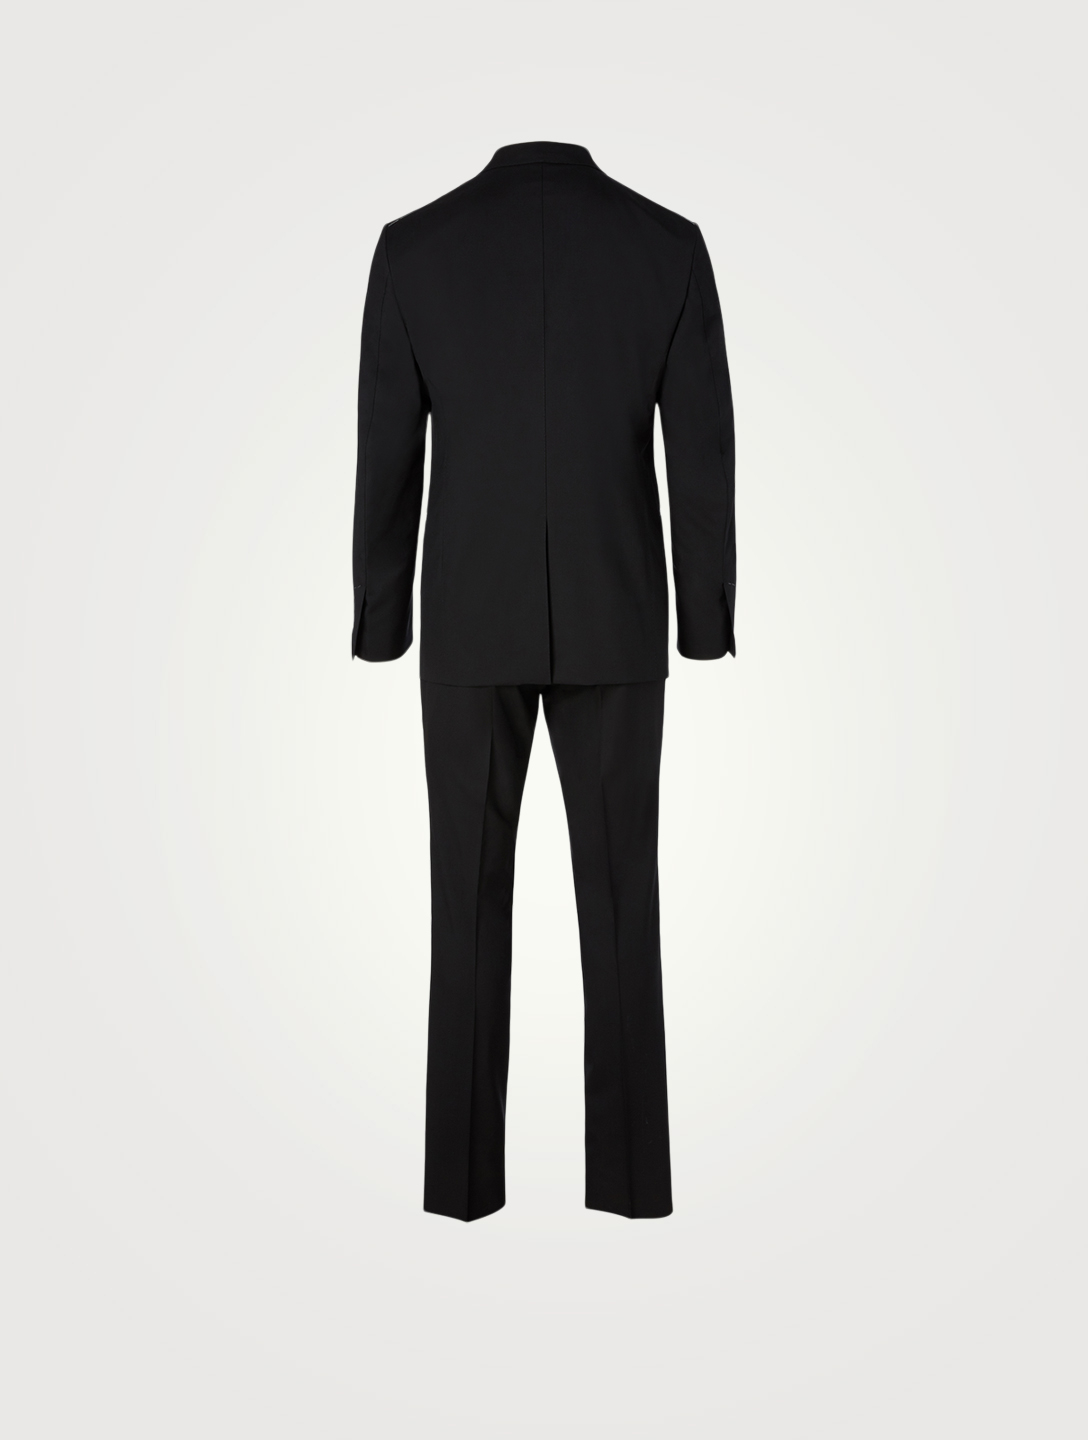 TOM FORD Shelton Wool Two-Piece Tuxedo Men's Black